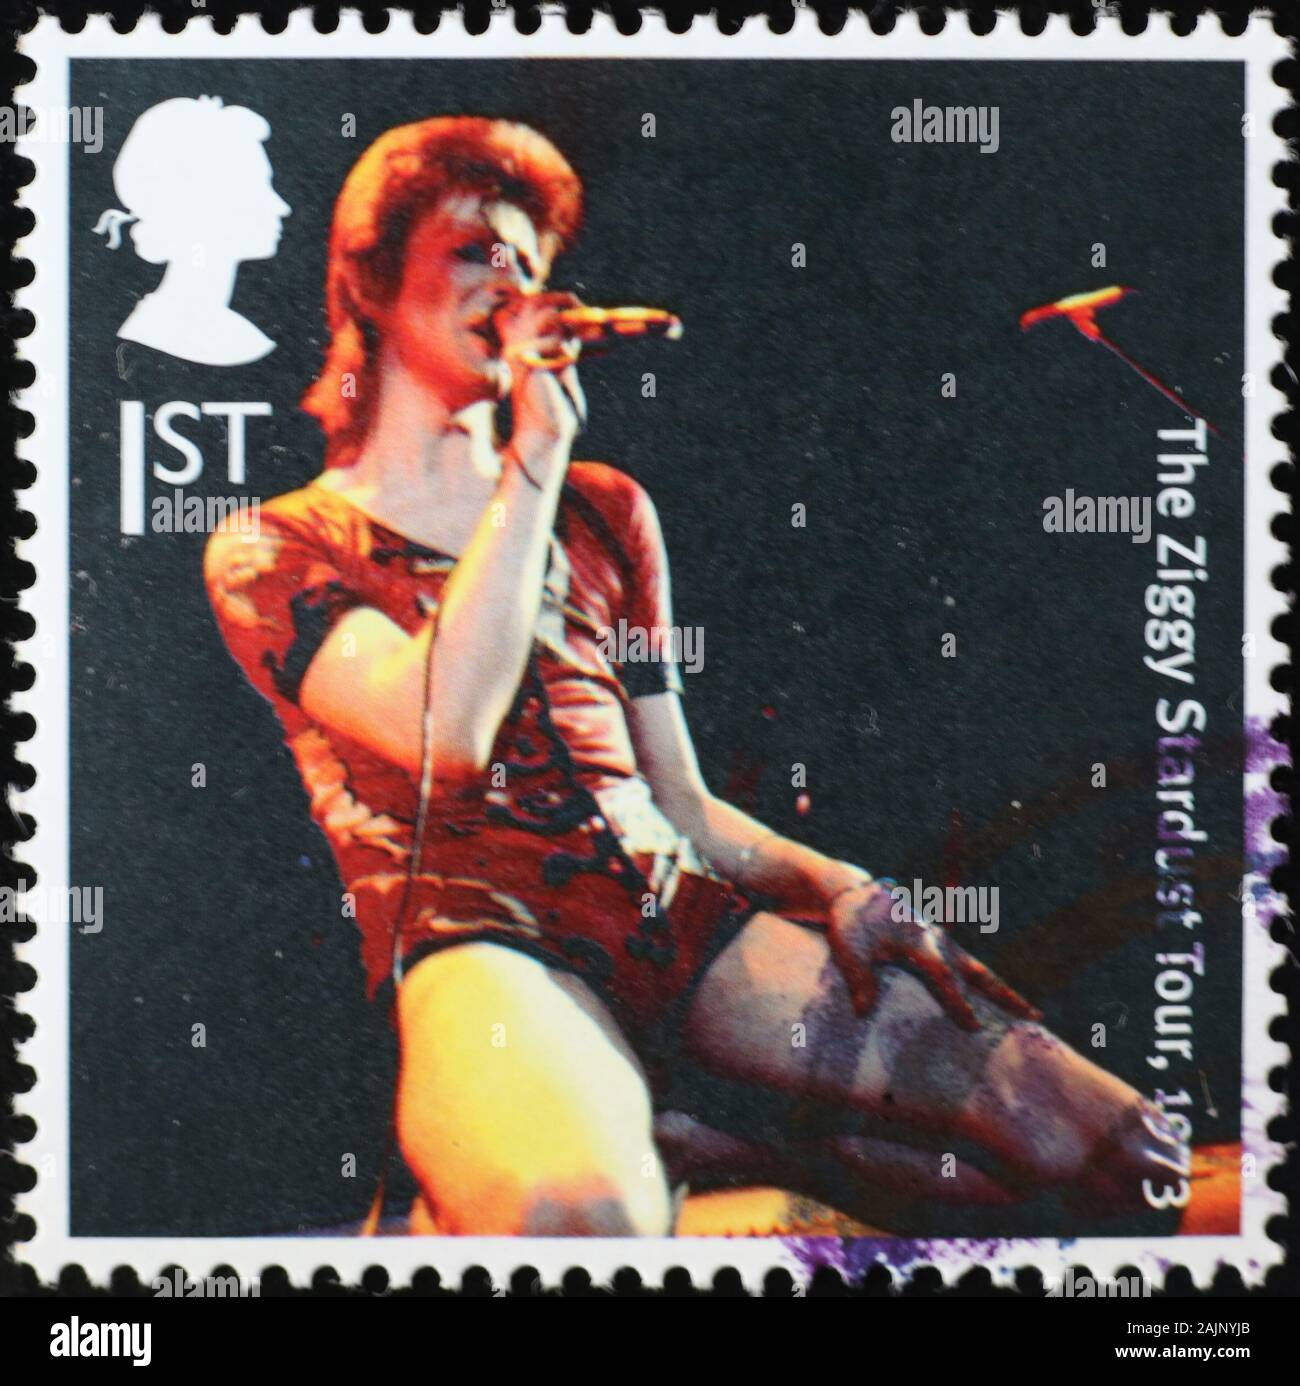 David Bowie in concert on postage stamp Stock Photo